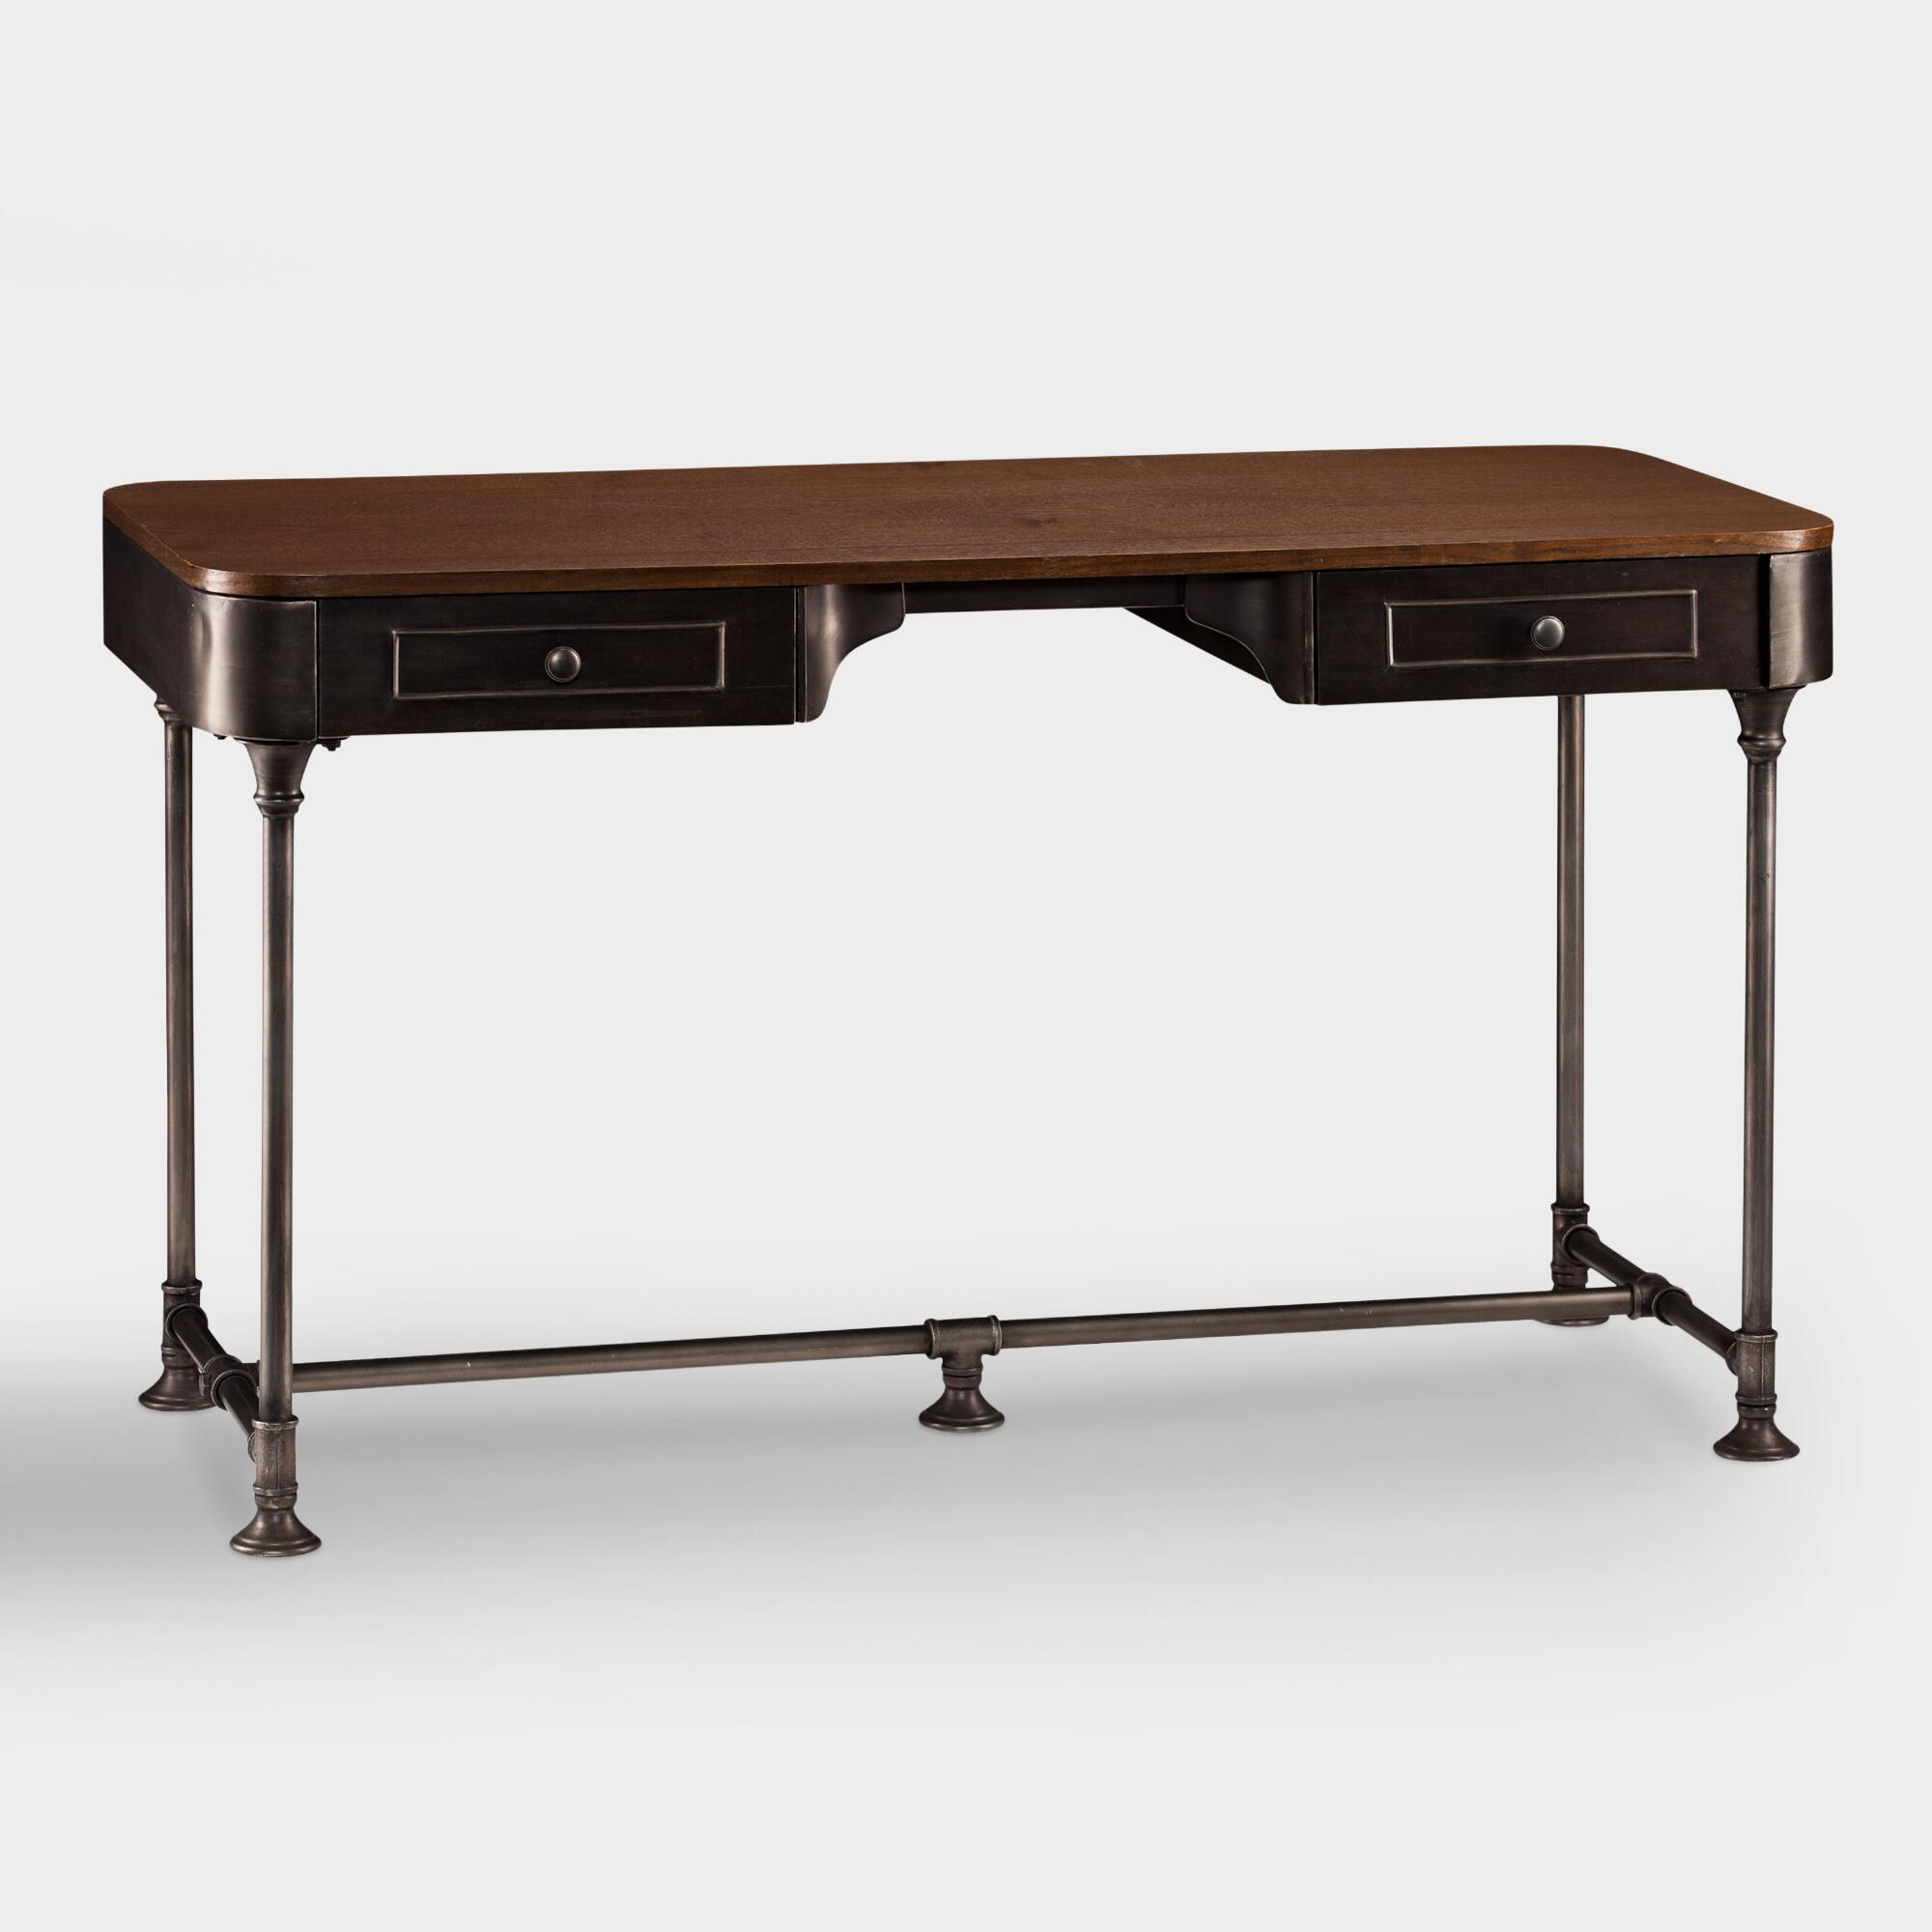 Wood and metal industrial style desk world market